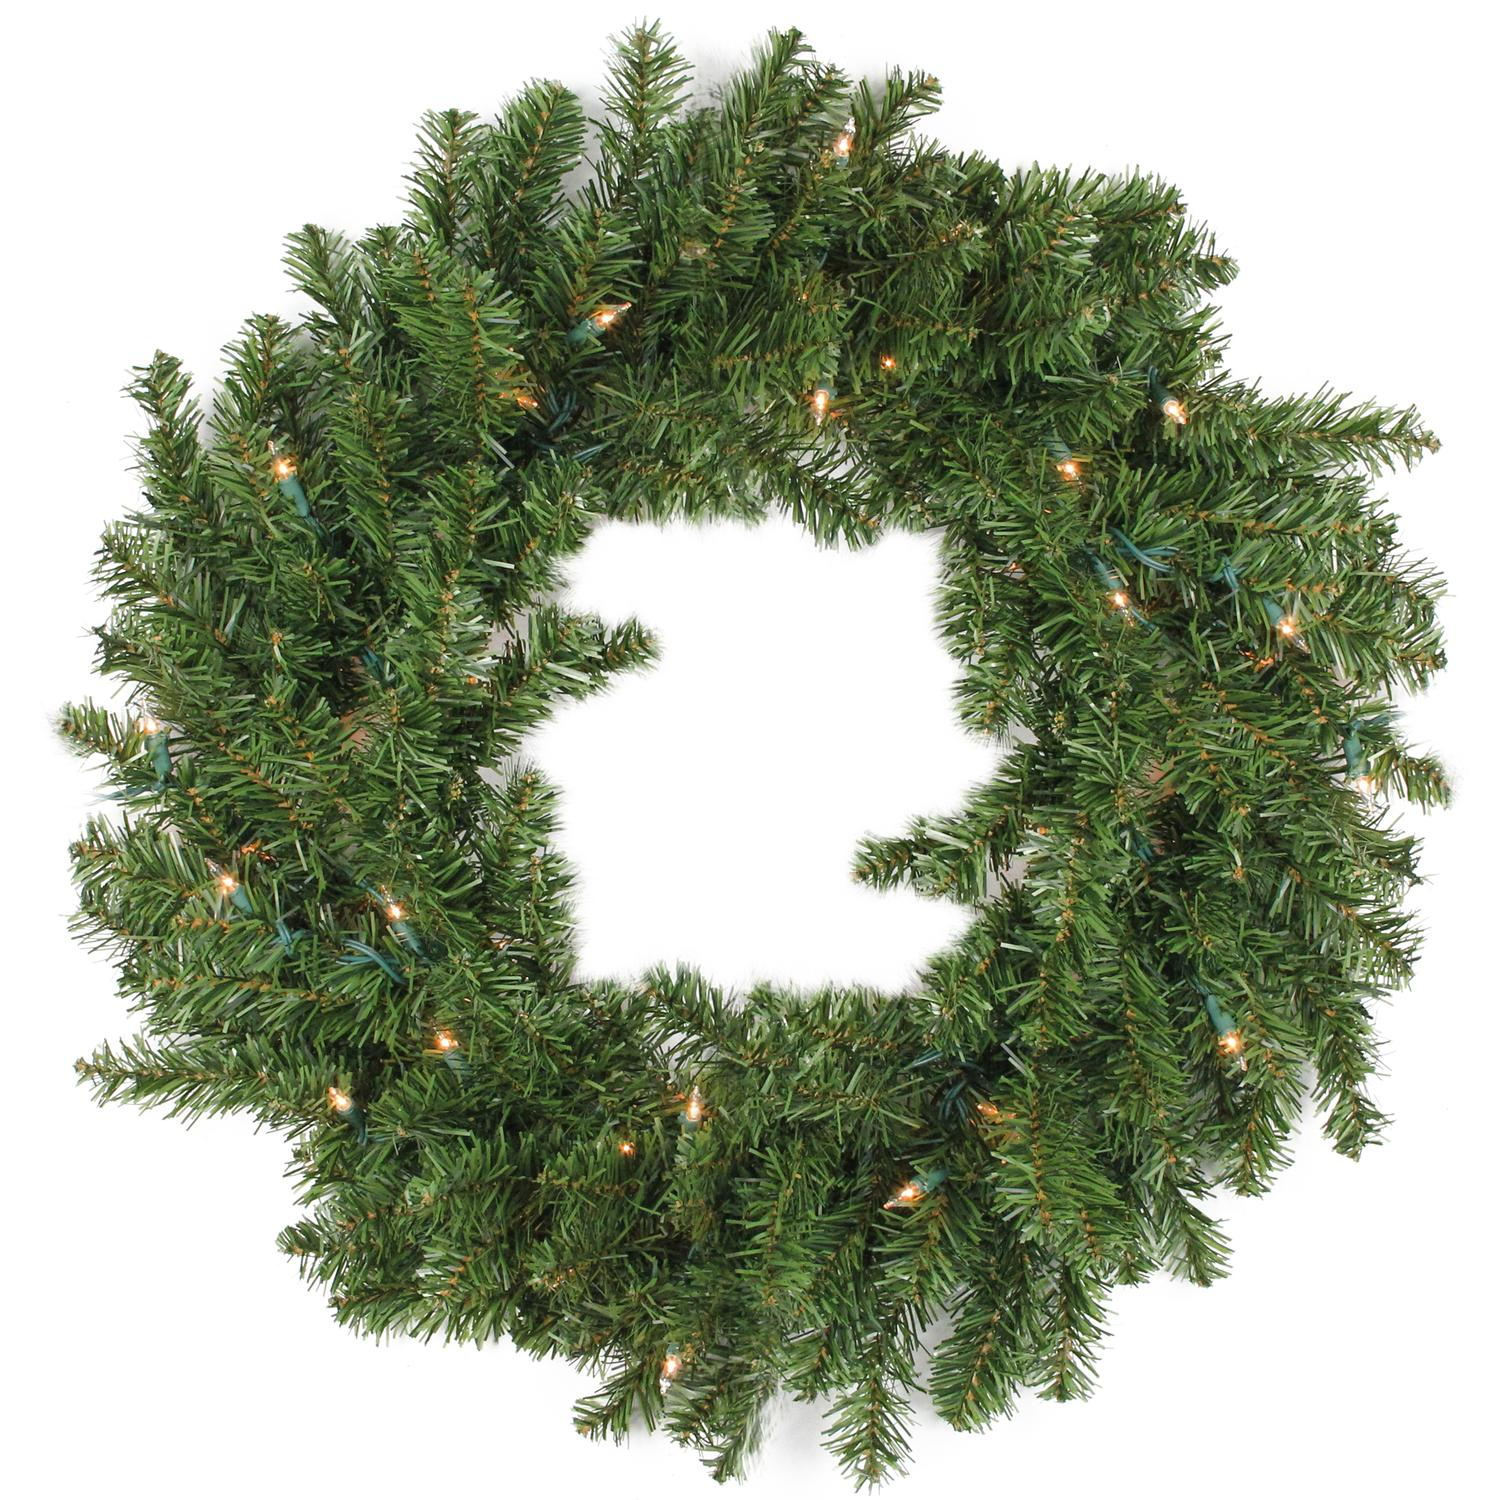 """Darice 30"""" Prelit LED Canadian Pine Artificial Christmas Wreath - Clear Lights"""